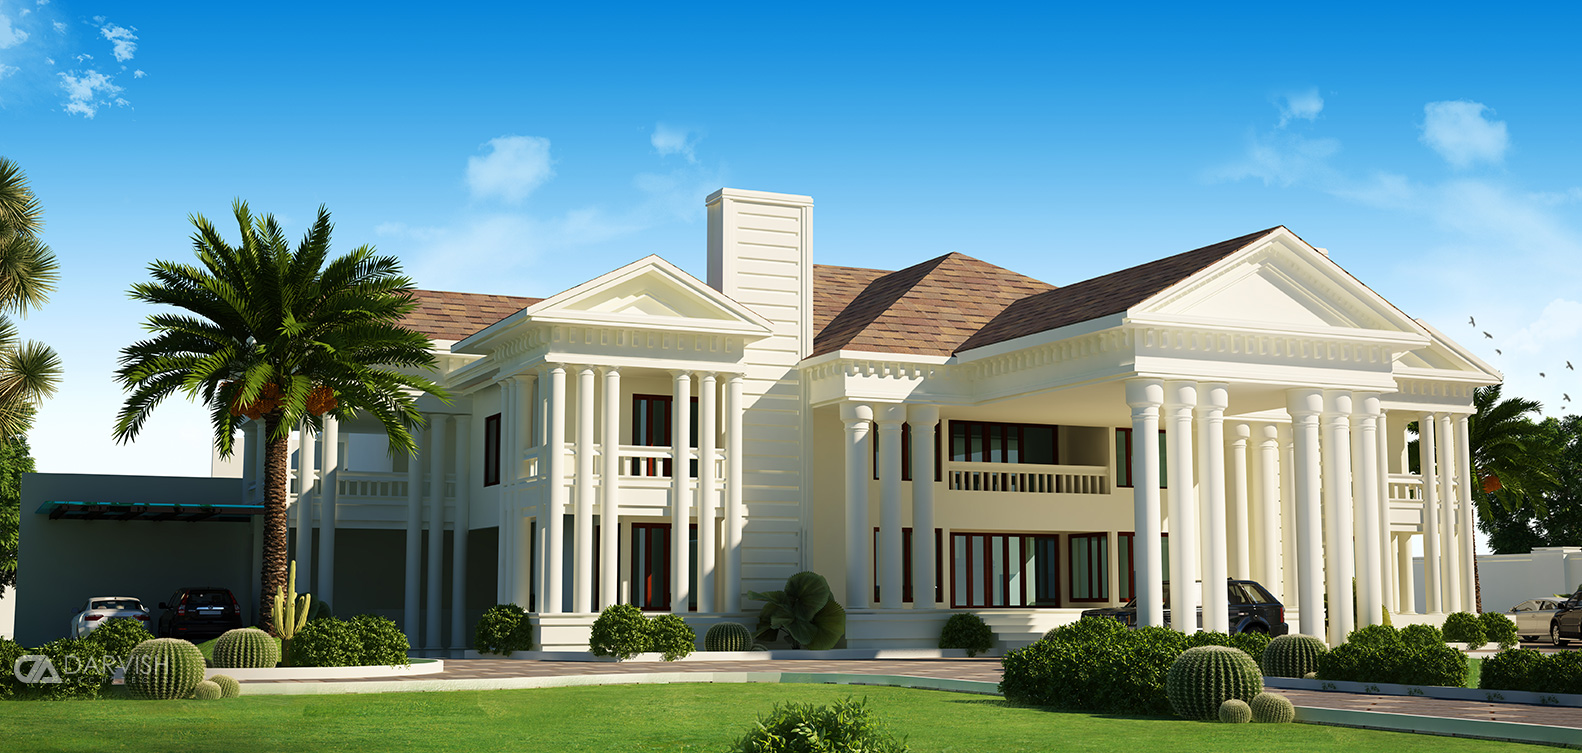 Architectural Designs for Houses